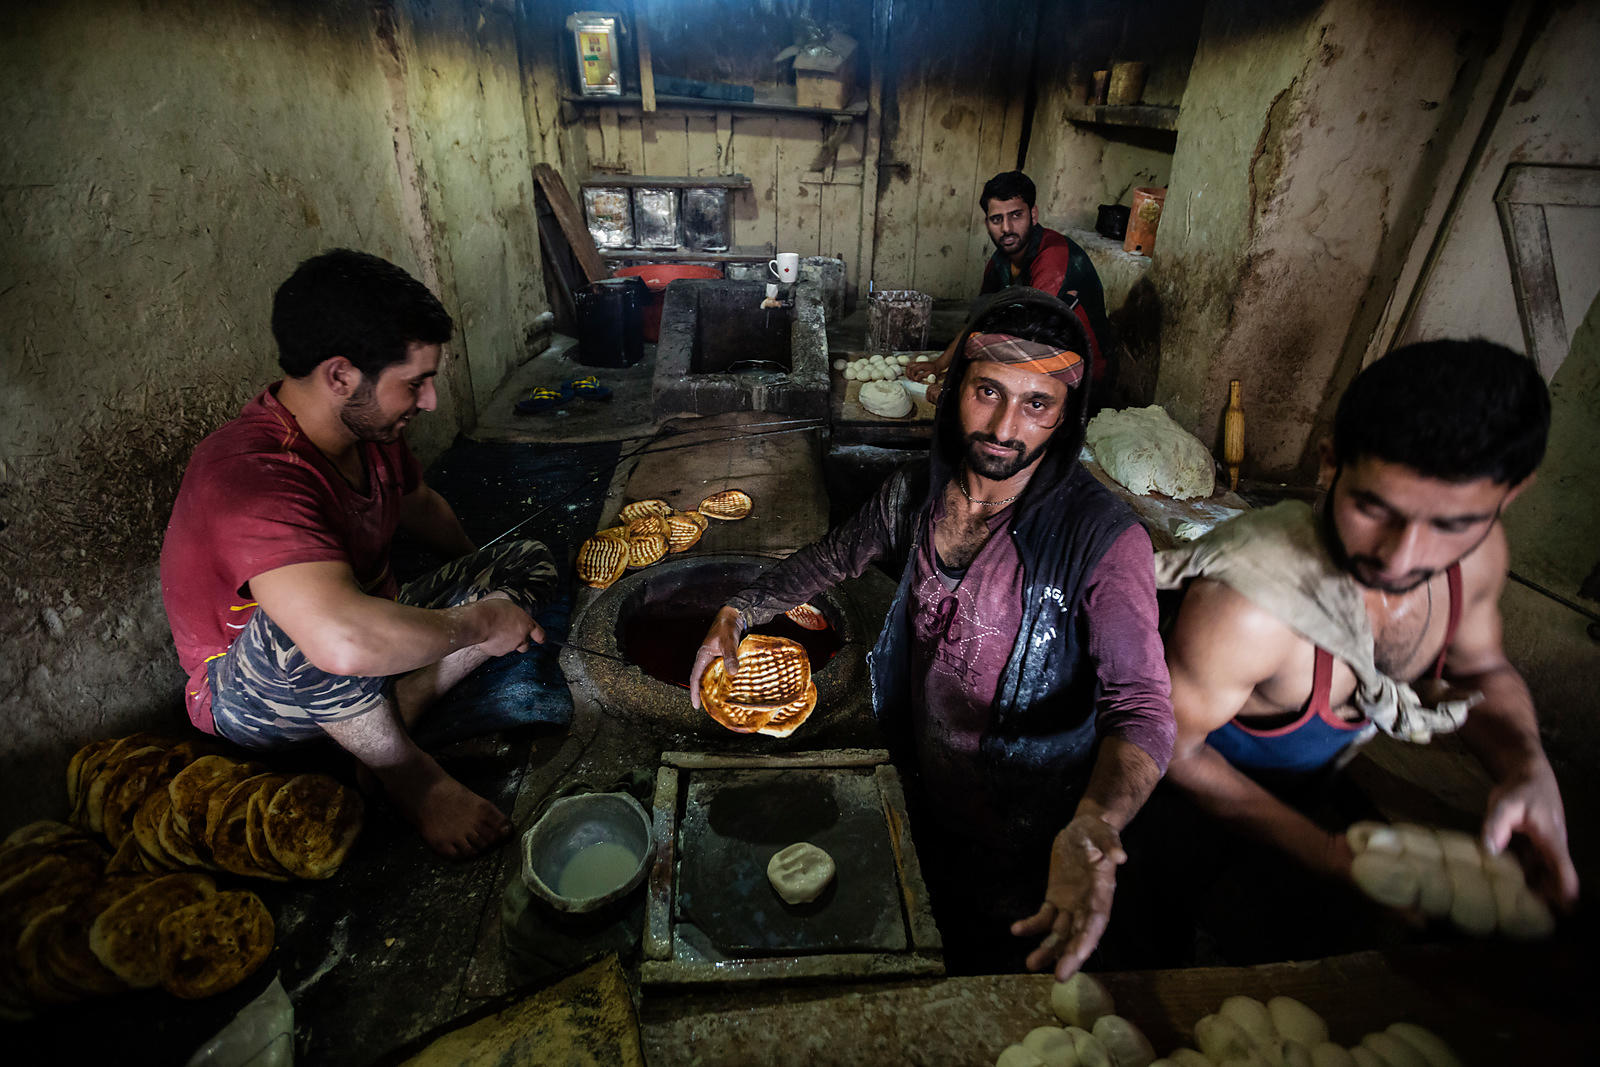 Men Cooking Flat Bread in a Tandoor Oven